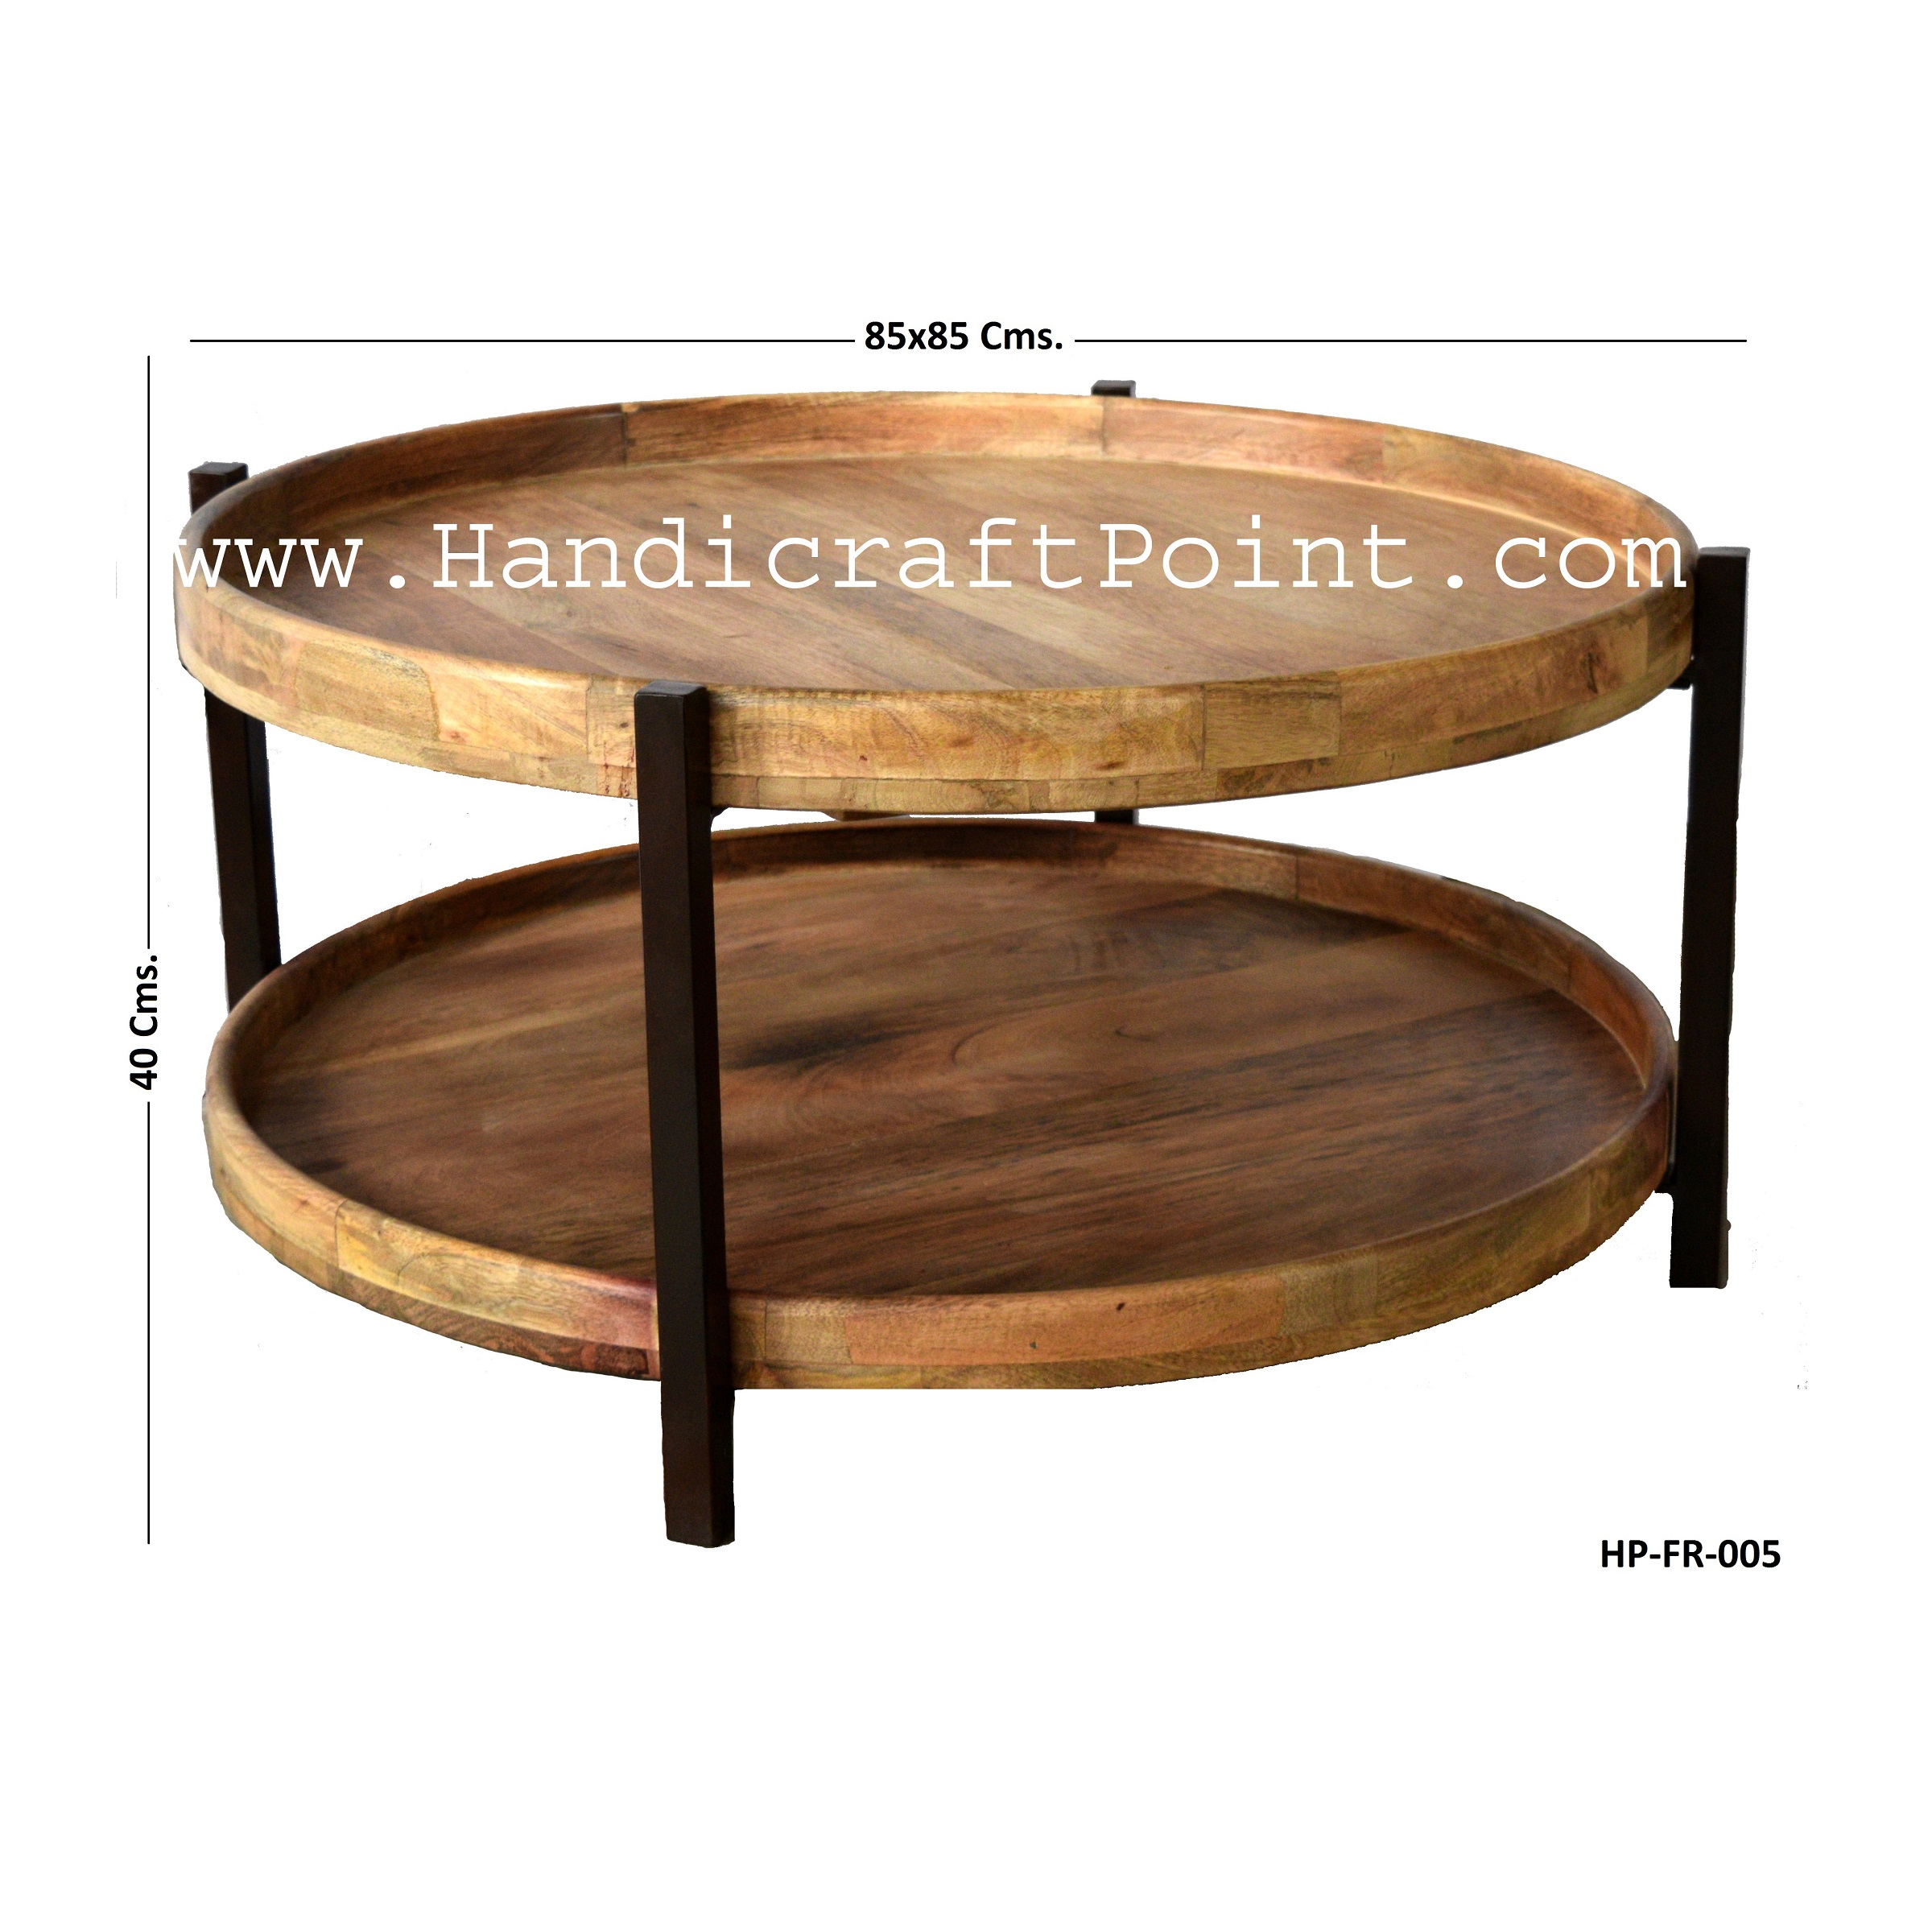 Iron 2 Wooden Plate Pipe Coffee Table Handicraft Point